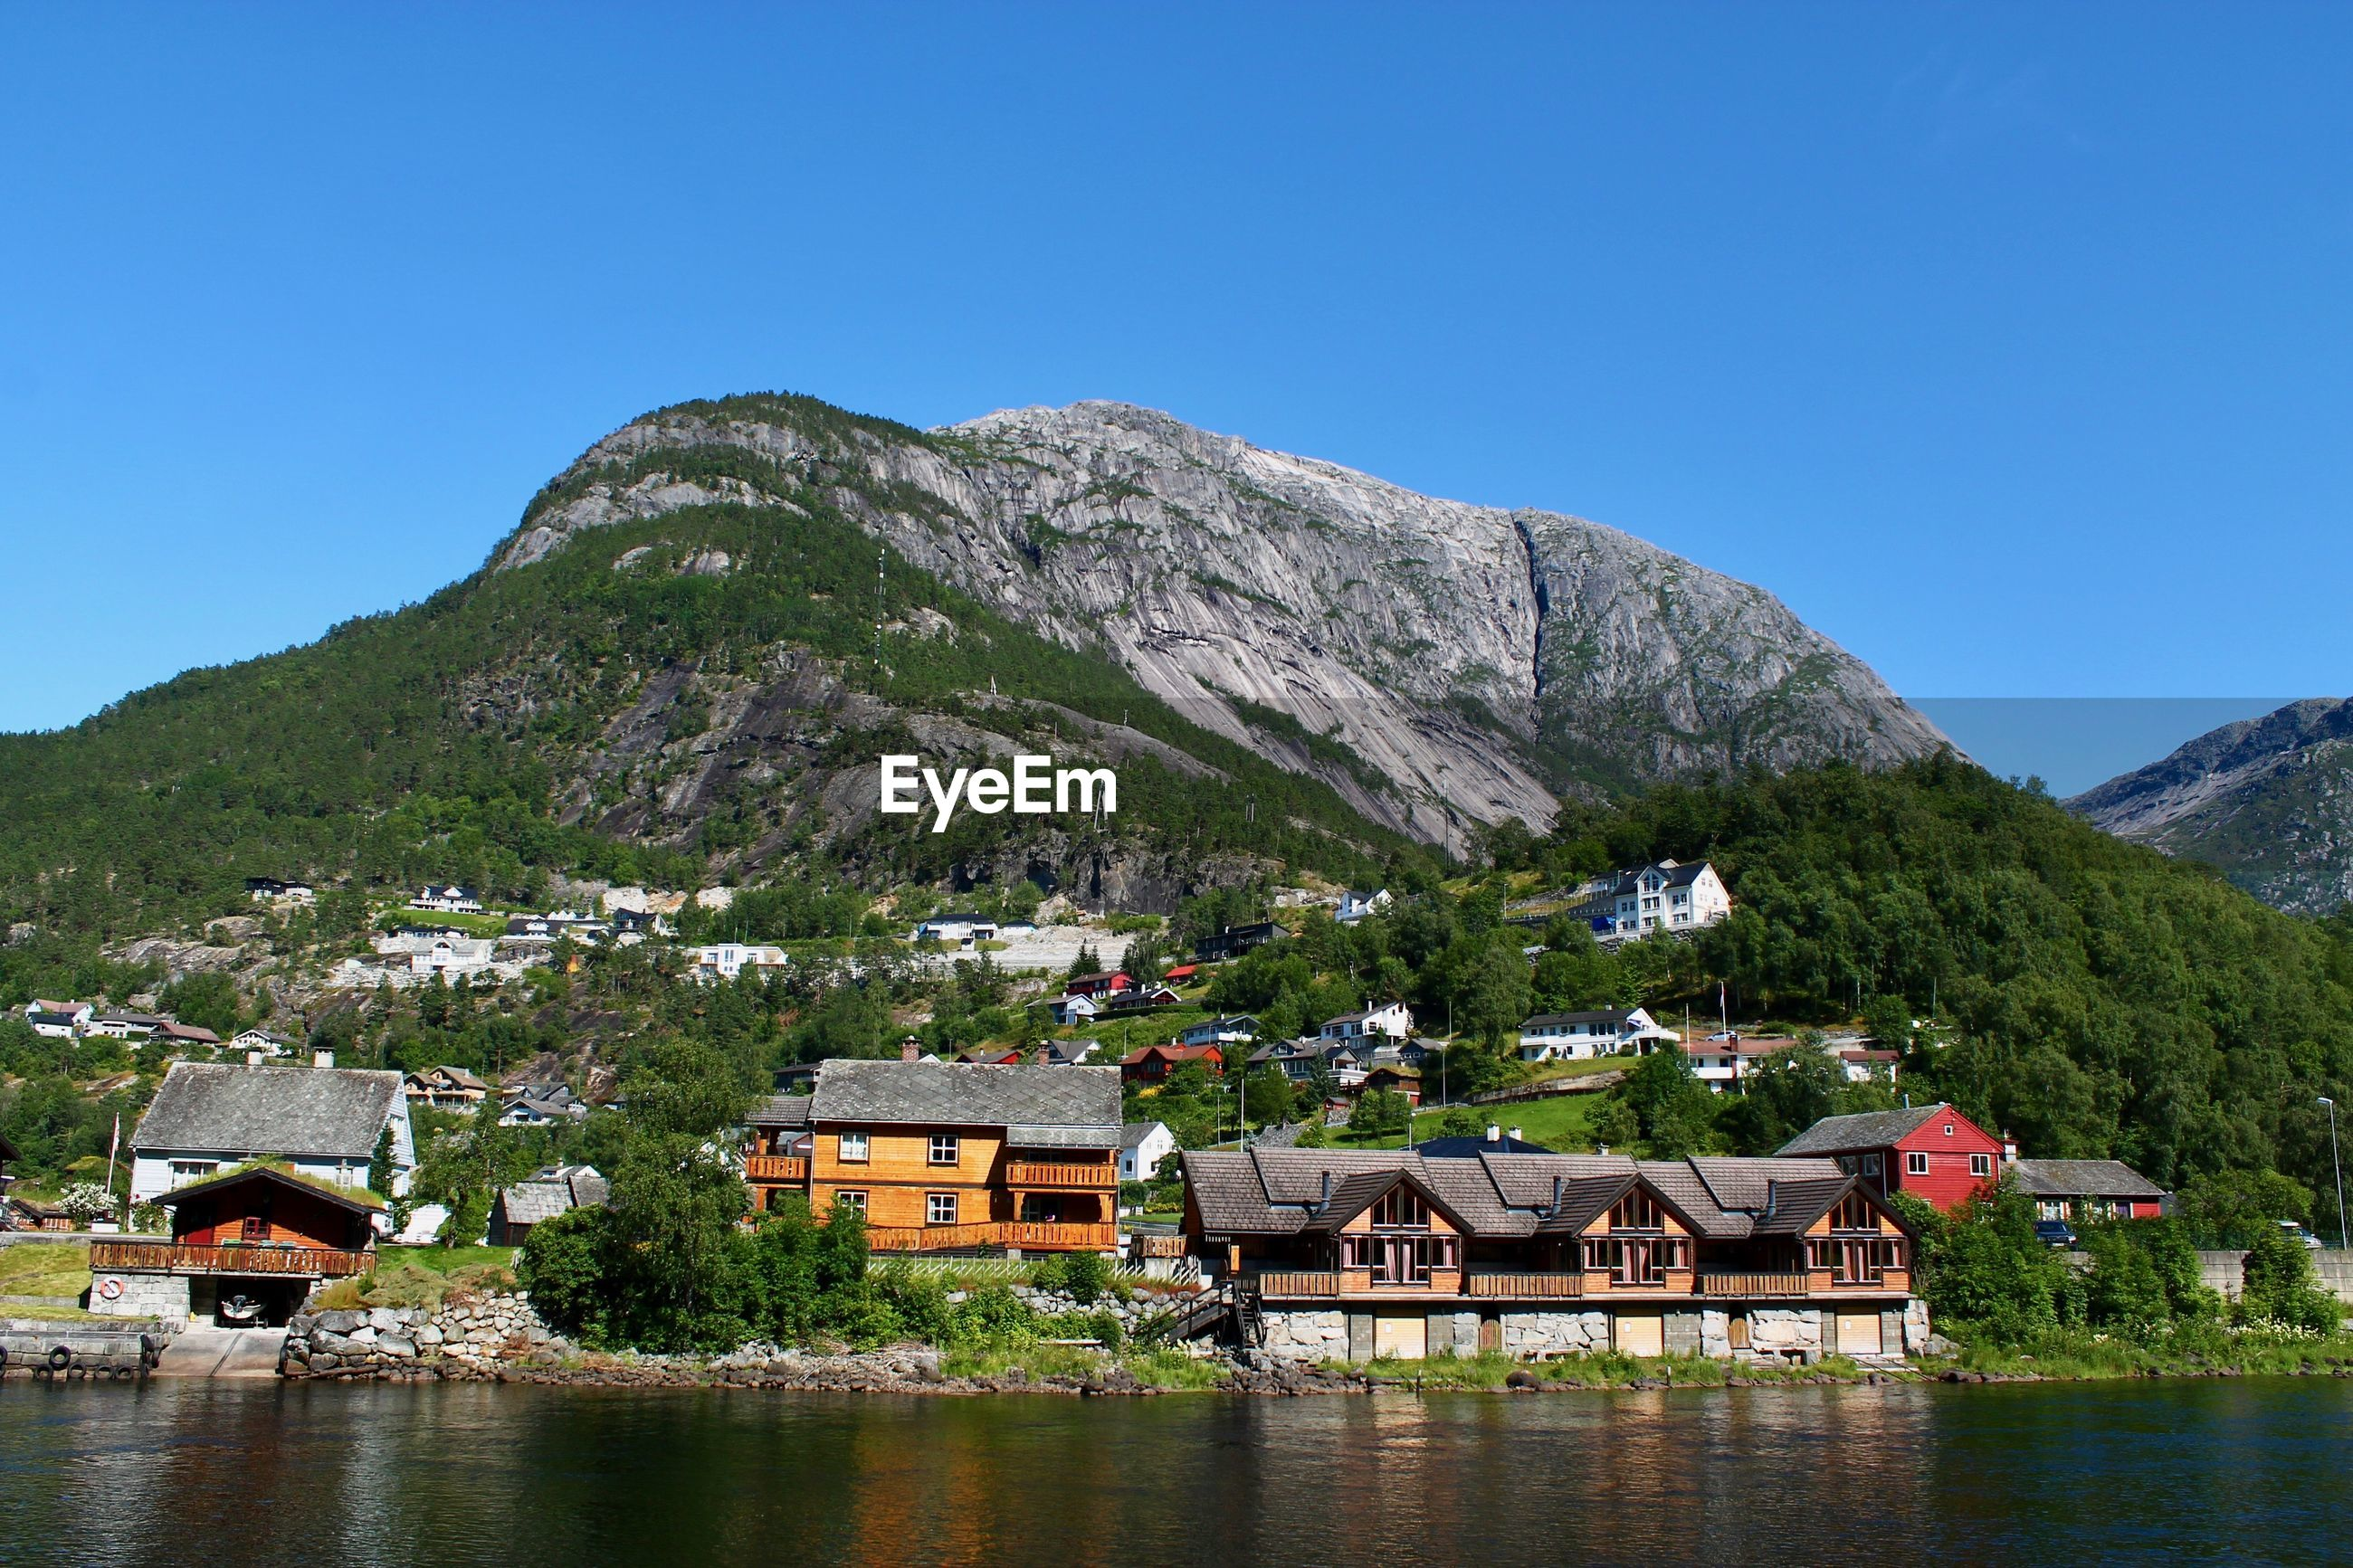 HOUSES IN A LAKE WITH MOUNTAIN IN BACKGROUND